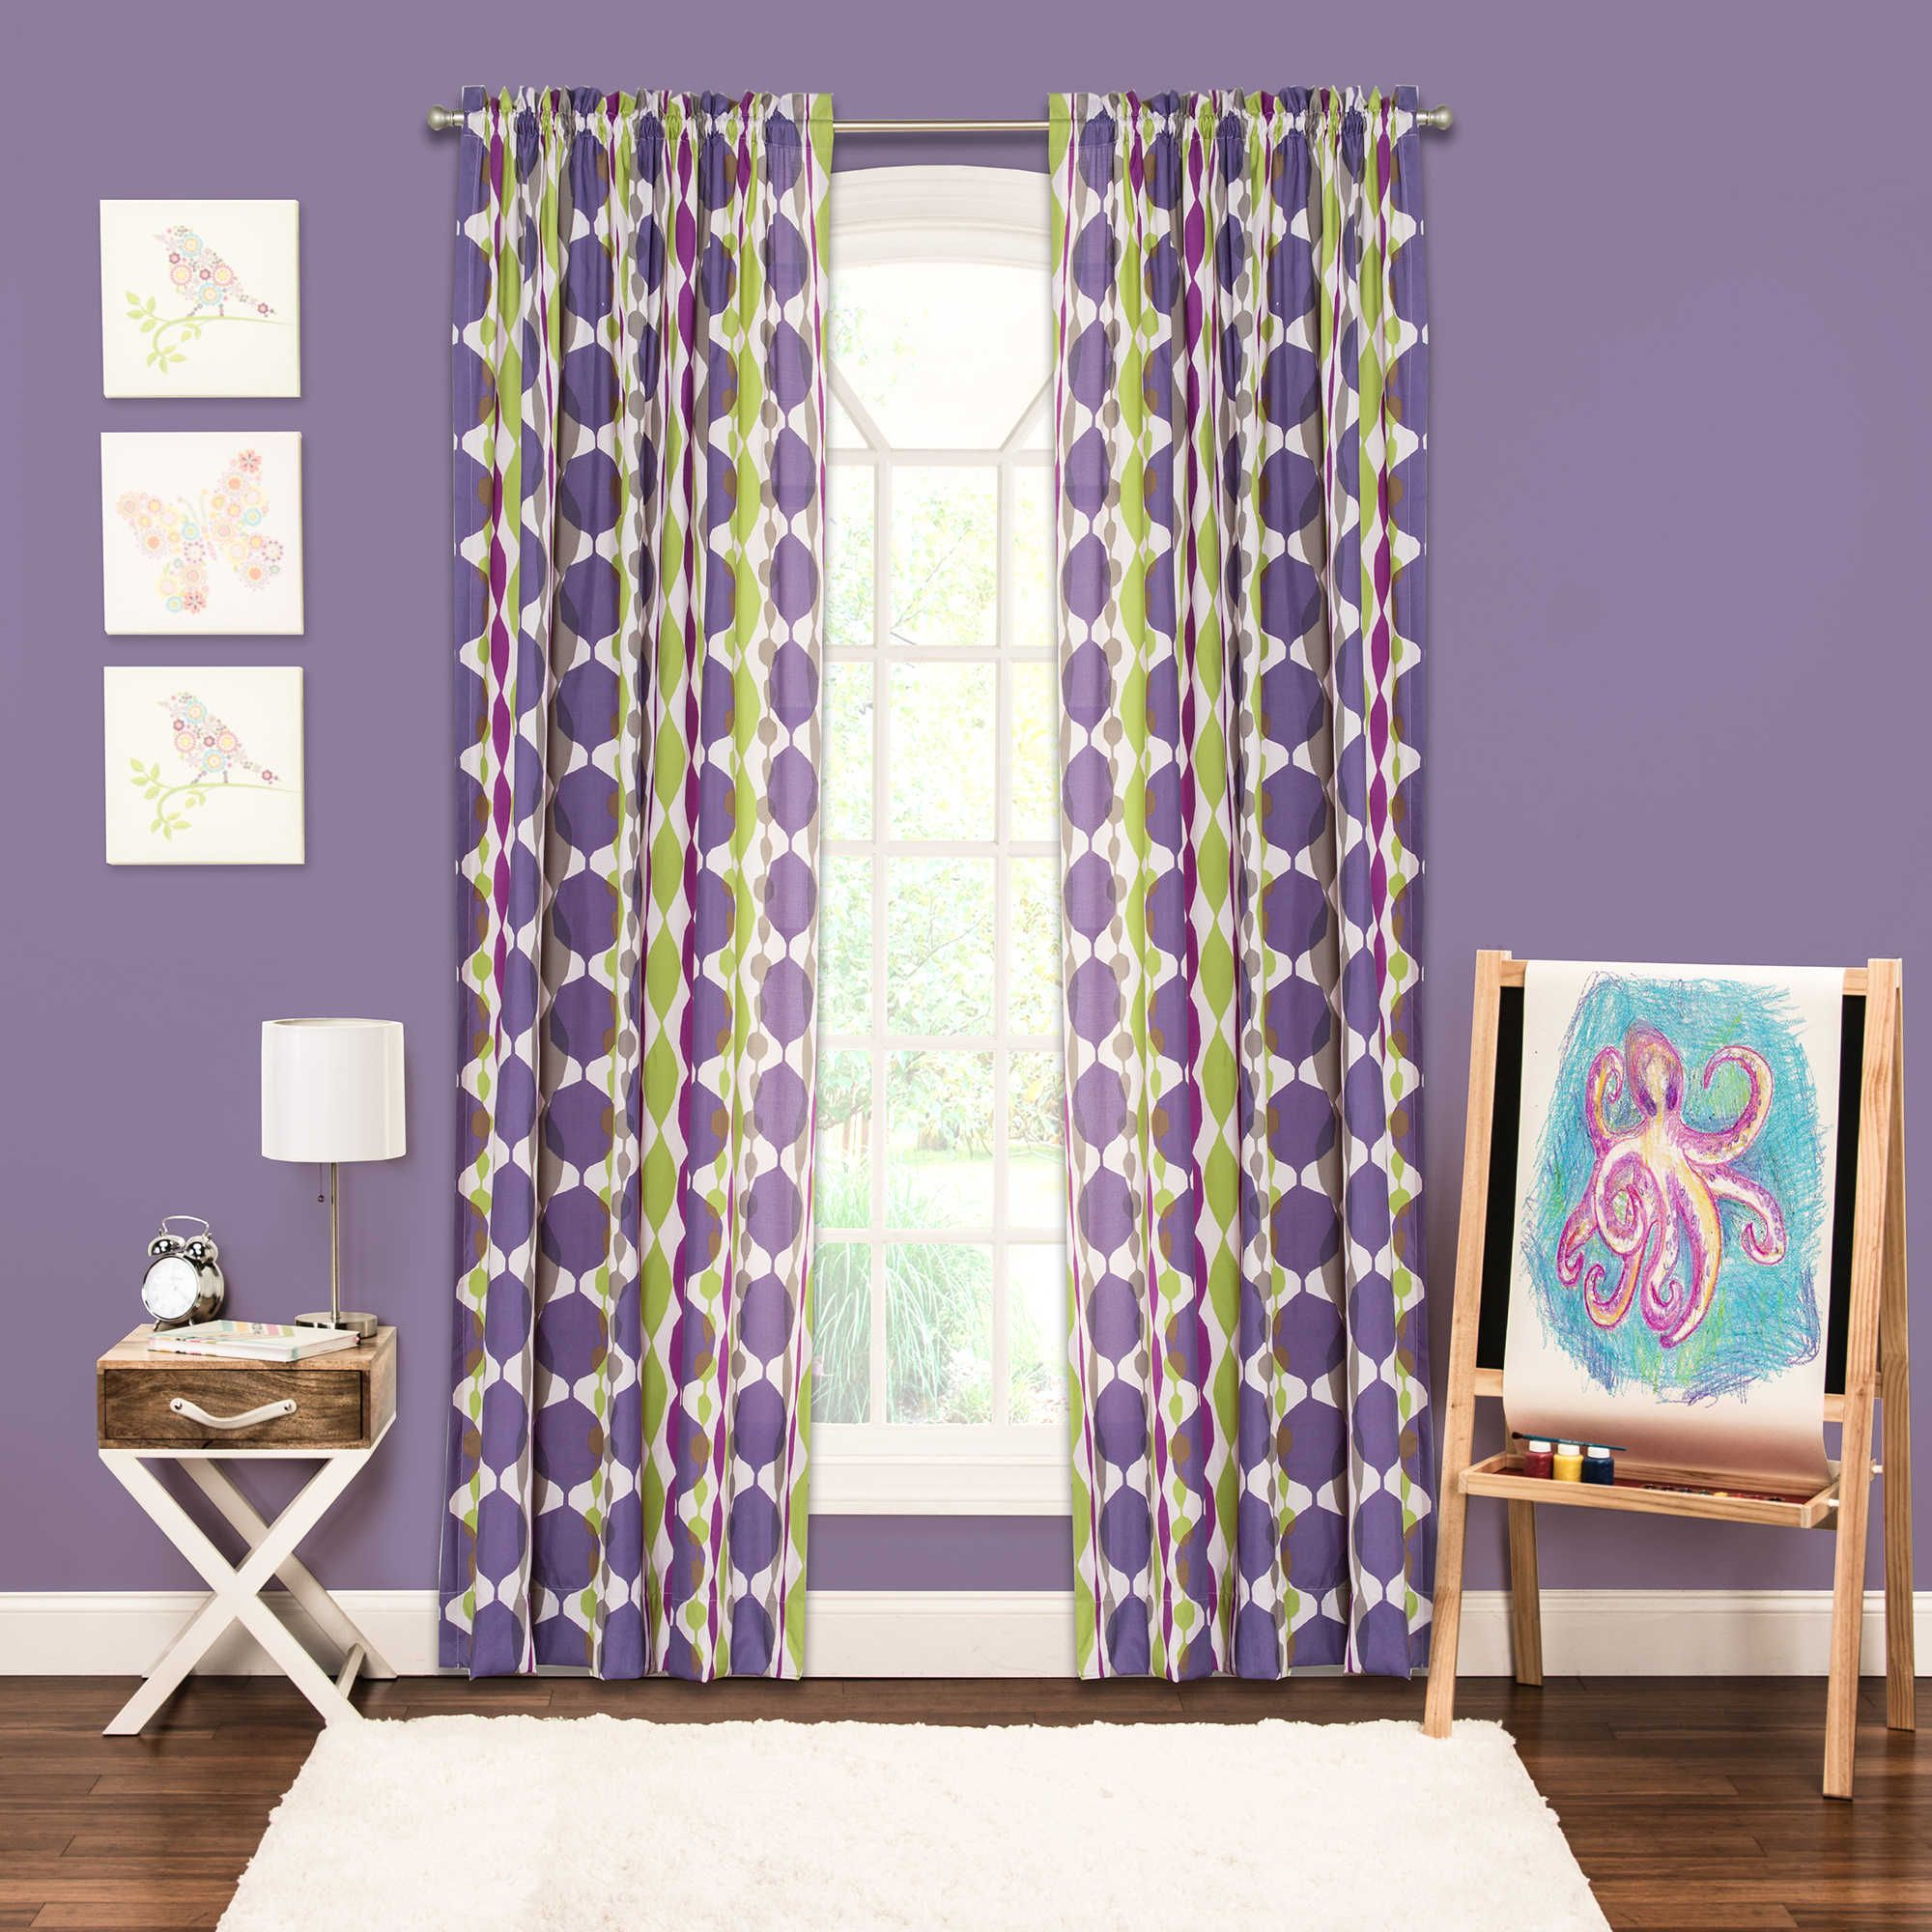 of drapes cottage wayfair panels and white curtain purple navy french custom rods size or kohls full draperies curtains stripe country drapery valances copper